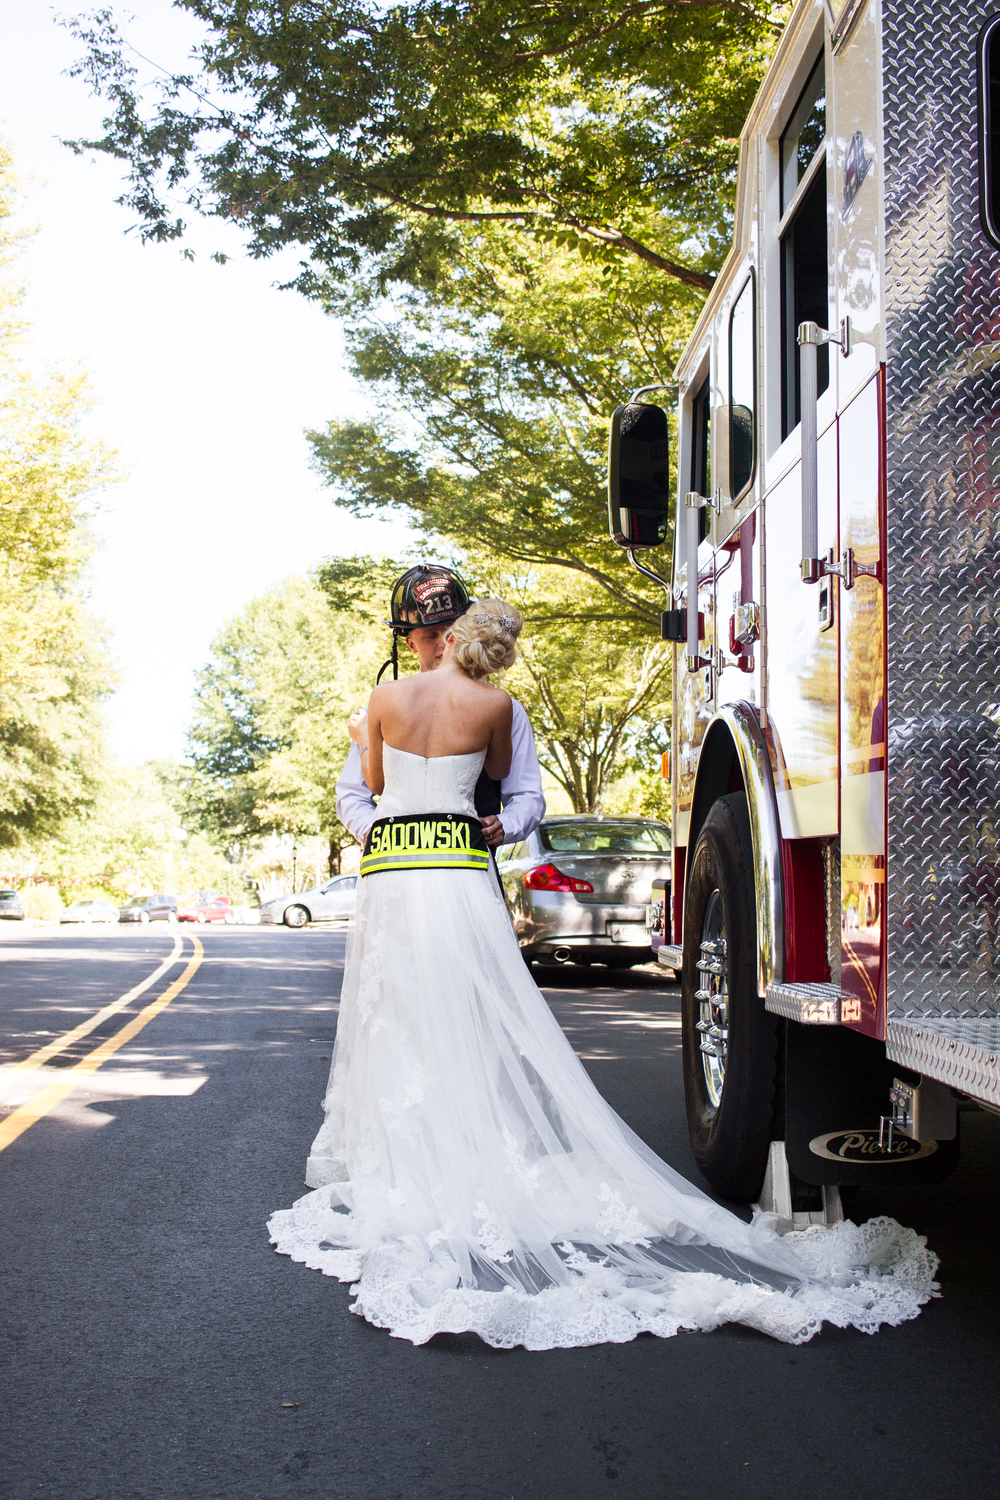 Bride Groom Firetruck